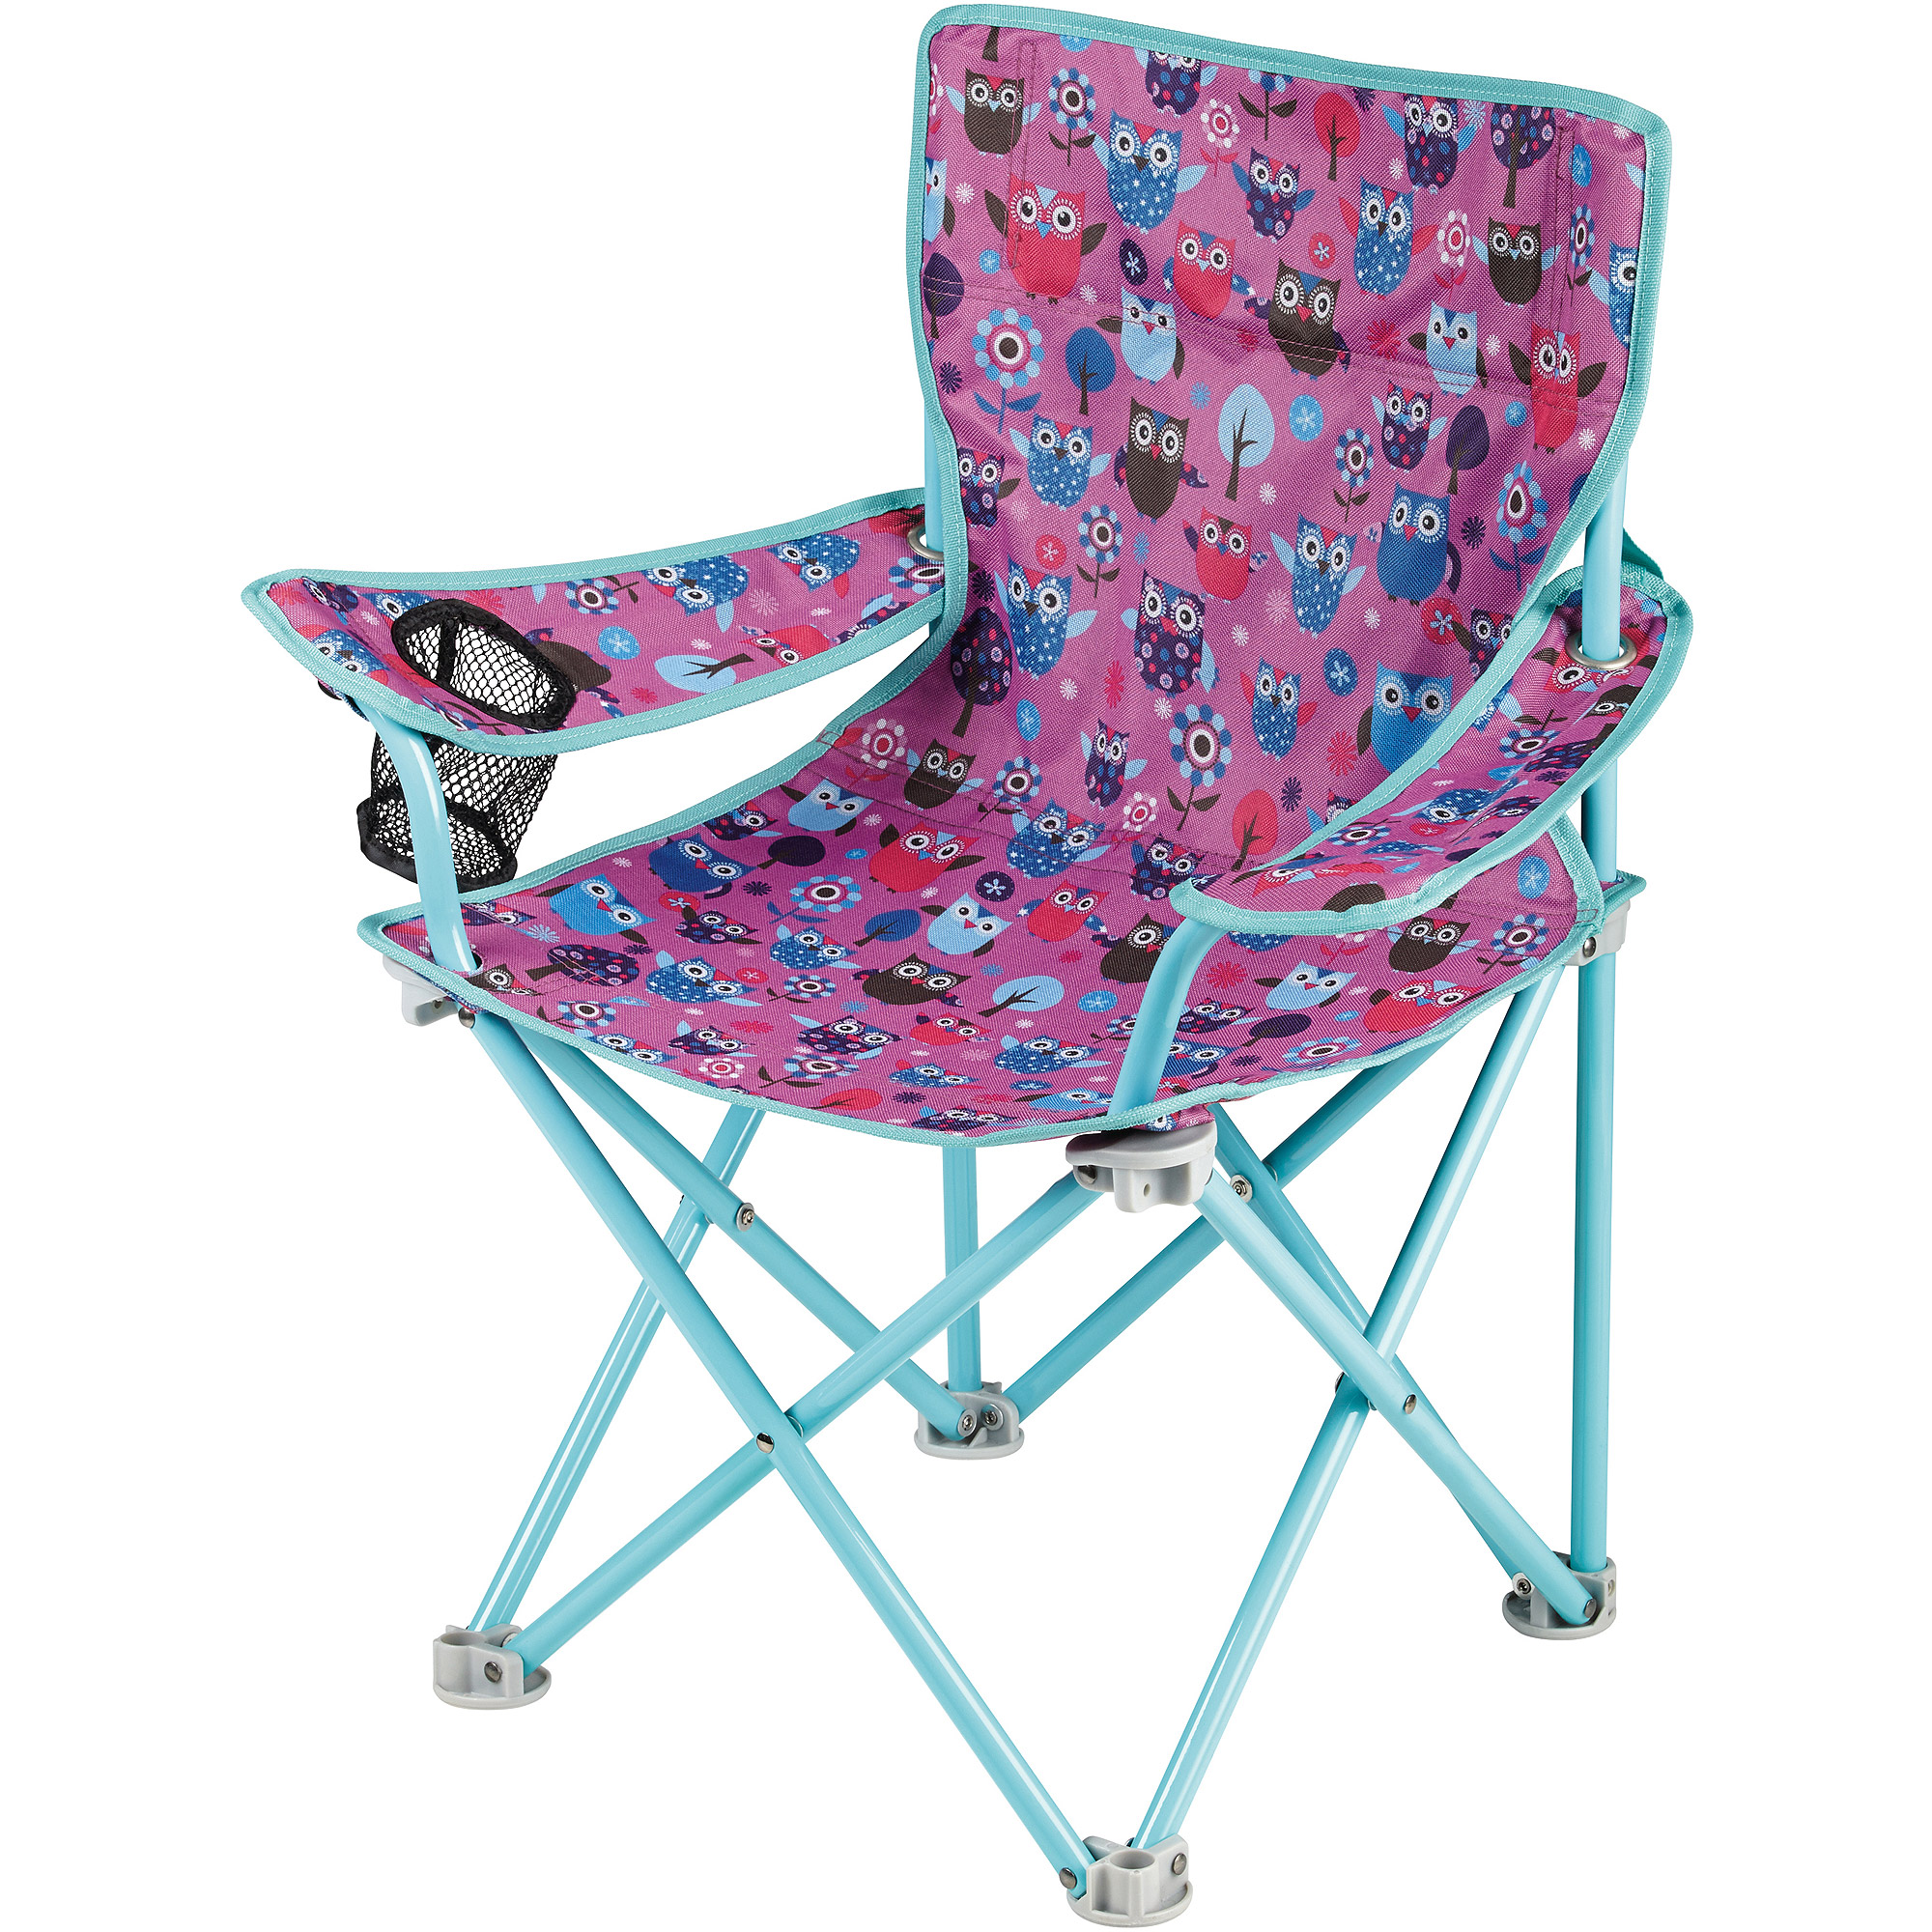 Little Kid Chairs Ozark Trail Kids Chair